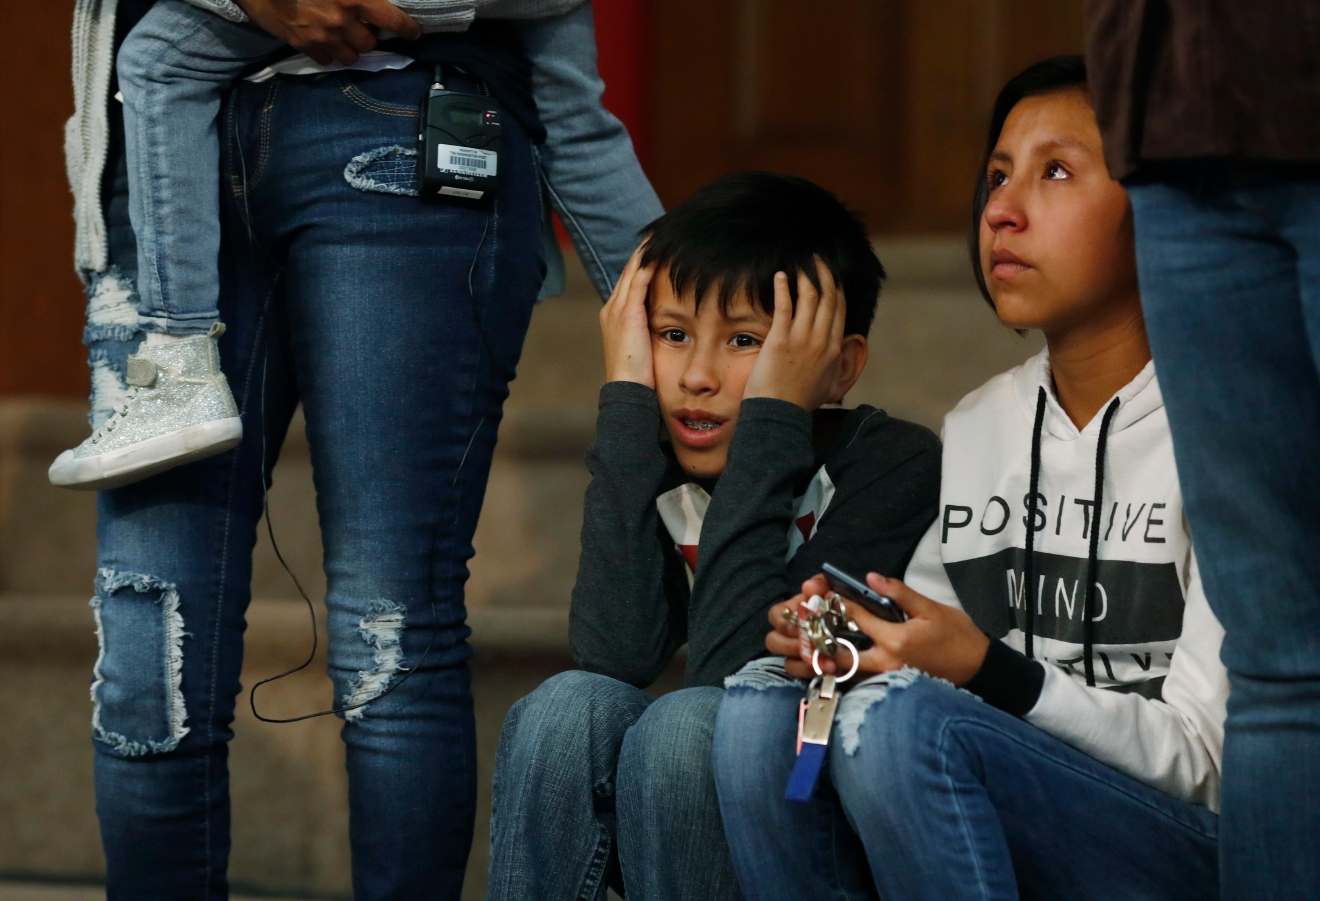 Roberto Vizguerra, center, and his sister, Luna, right, sit next to their mother, Jeanette, left, a Mexican woman seeking to avoid deportation from the United States, during a news conference in a church in which the Vizguerra and her children have taken refuge Wednesday, Feb. 15, 2017, in Denver. U.S. immigration authorities have her request to remain in the country. (AP Photo/David Zalubowski)